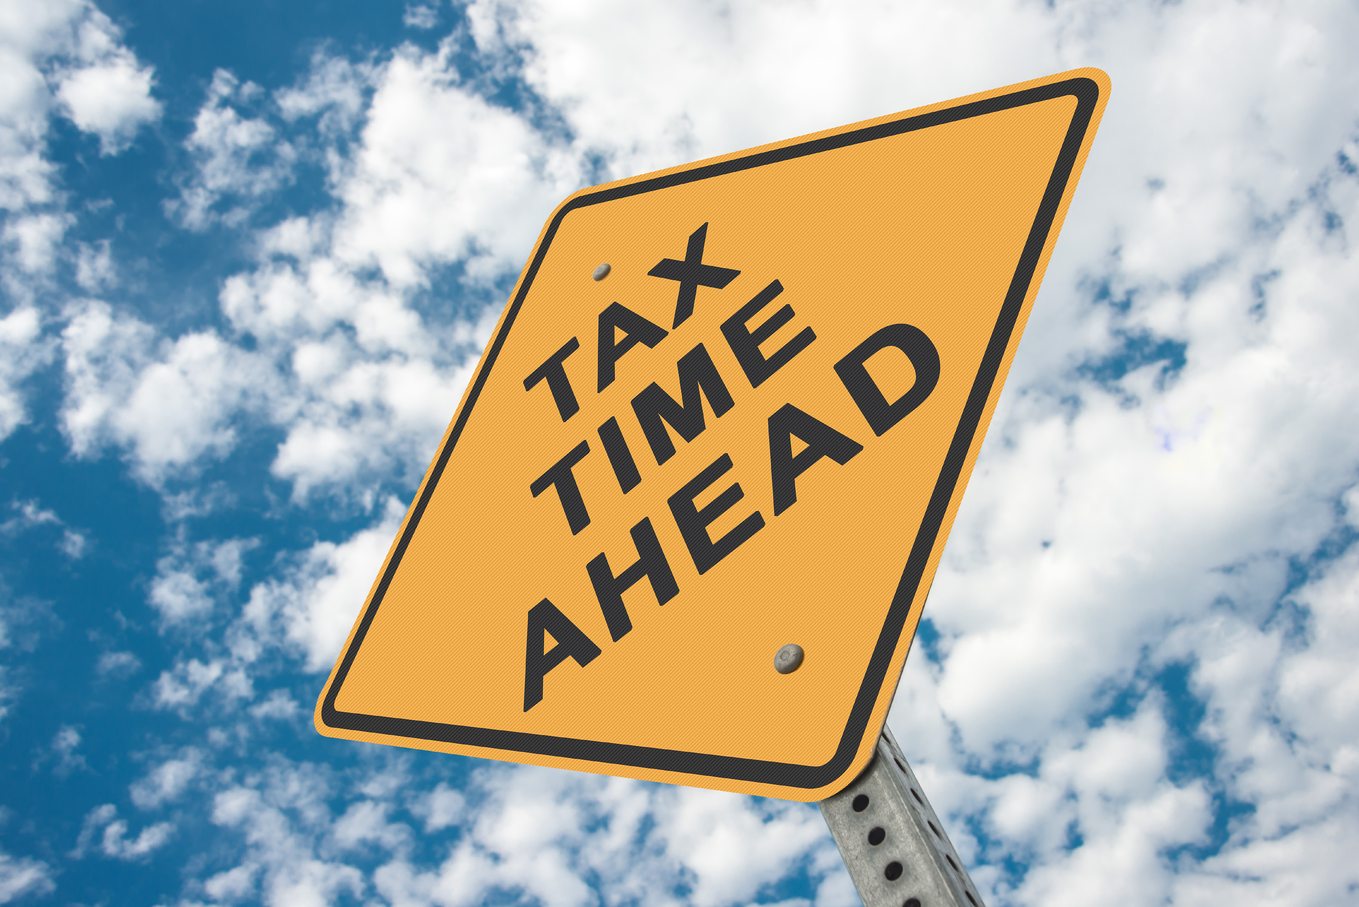 Tax Time Ahead Road Sign